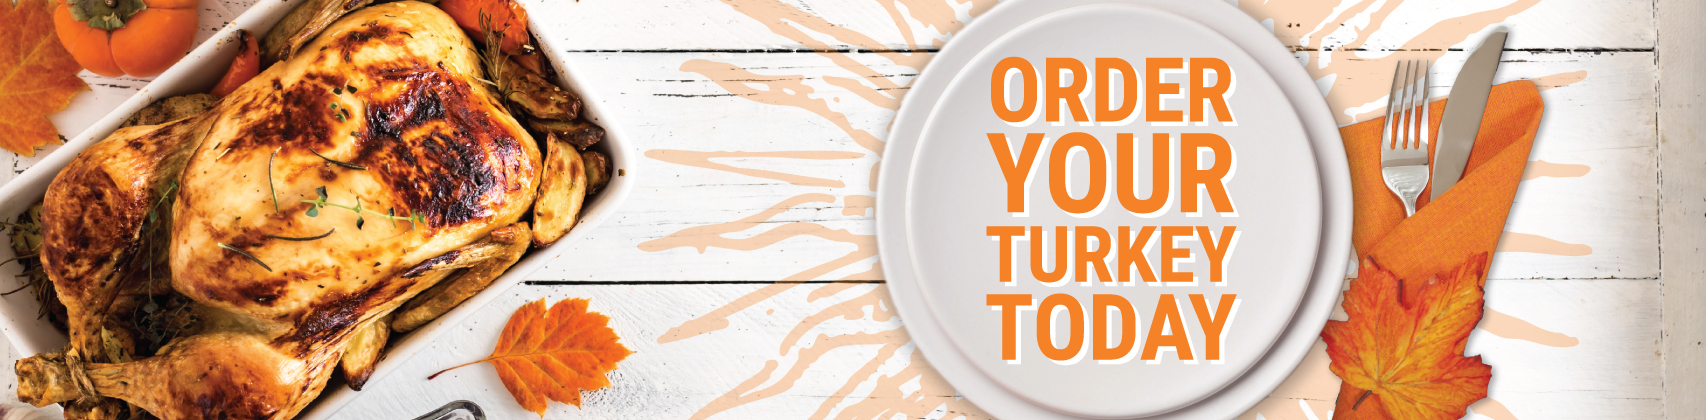 Order-your-turkey-today_web banner